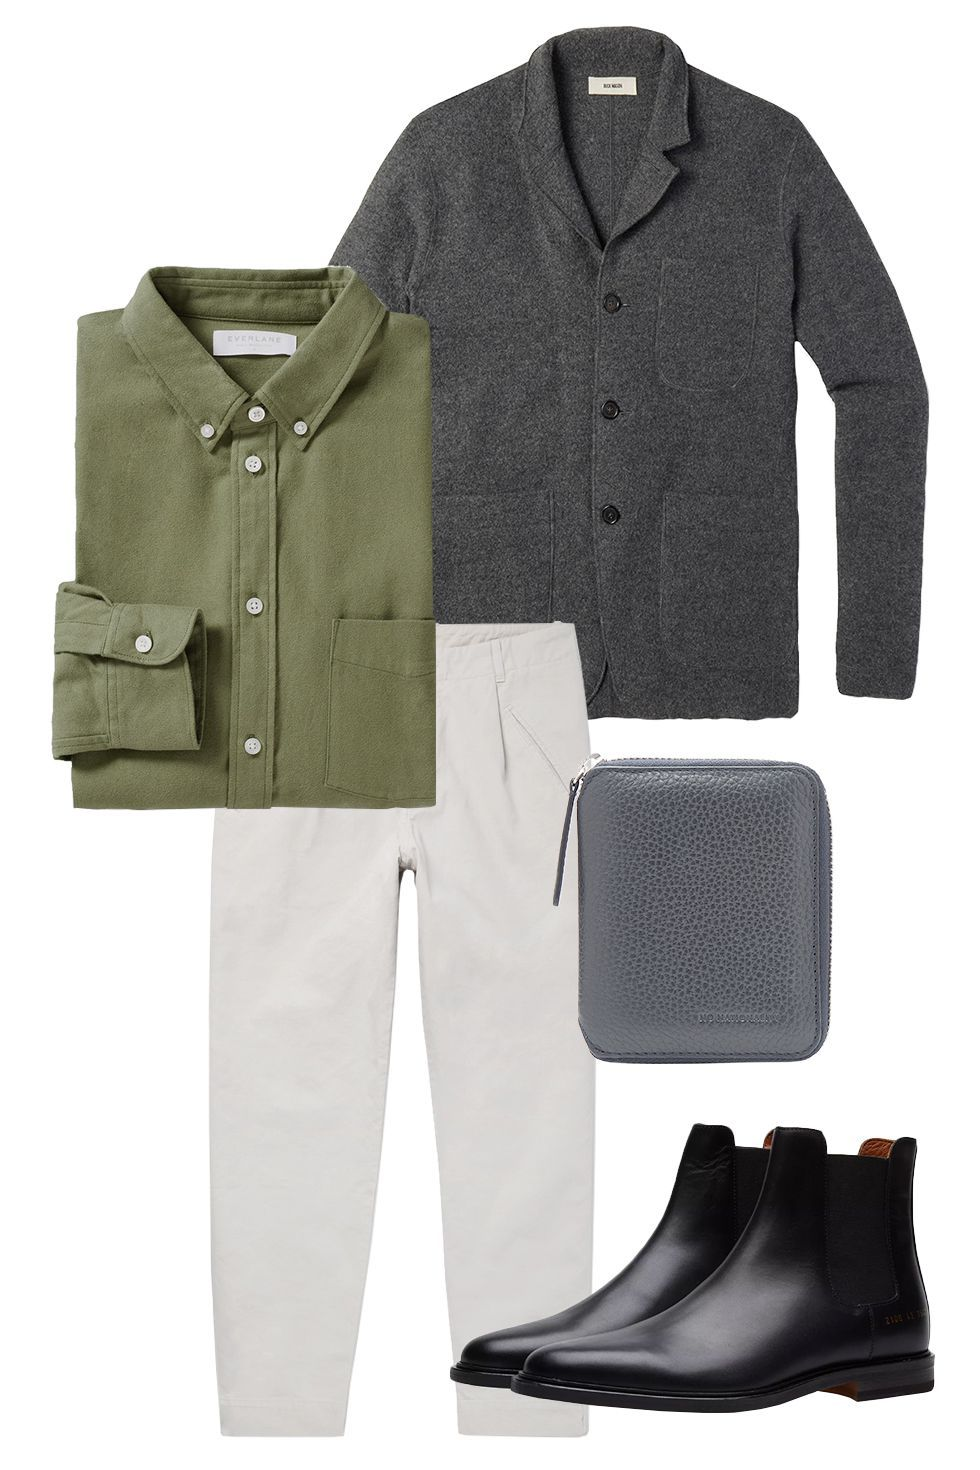 20 Fashionable Easter Outfit Ideas for Men 2019 photo